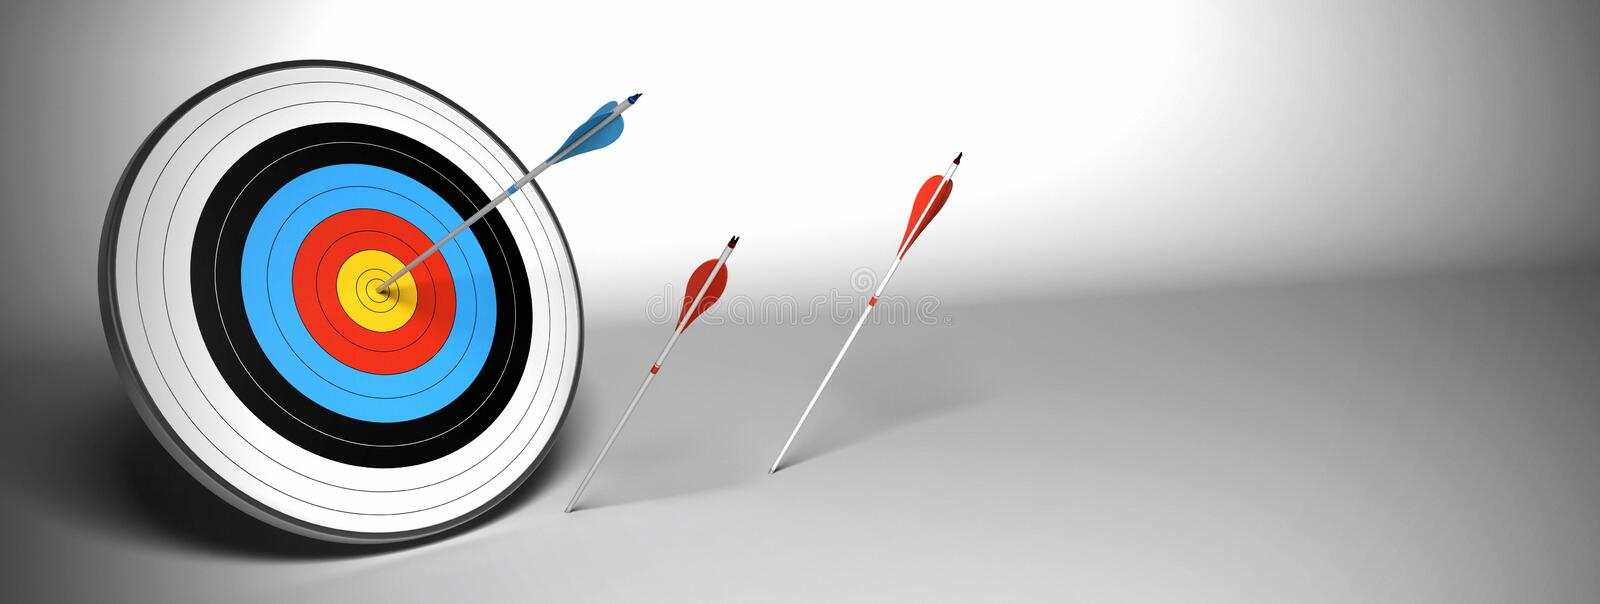 Target Arrow Over A Gray Background Banner Royalty Free Stock Photography